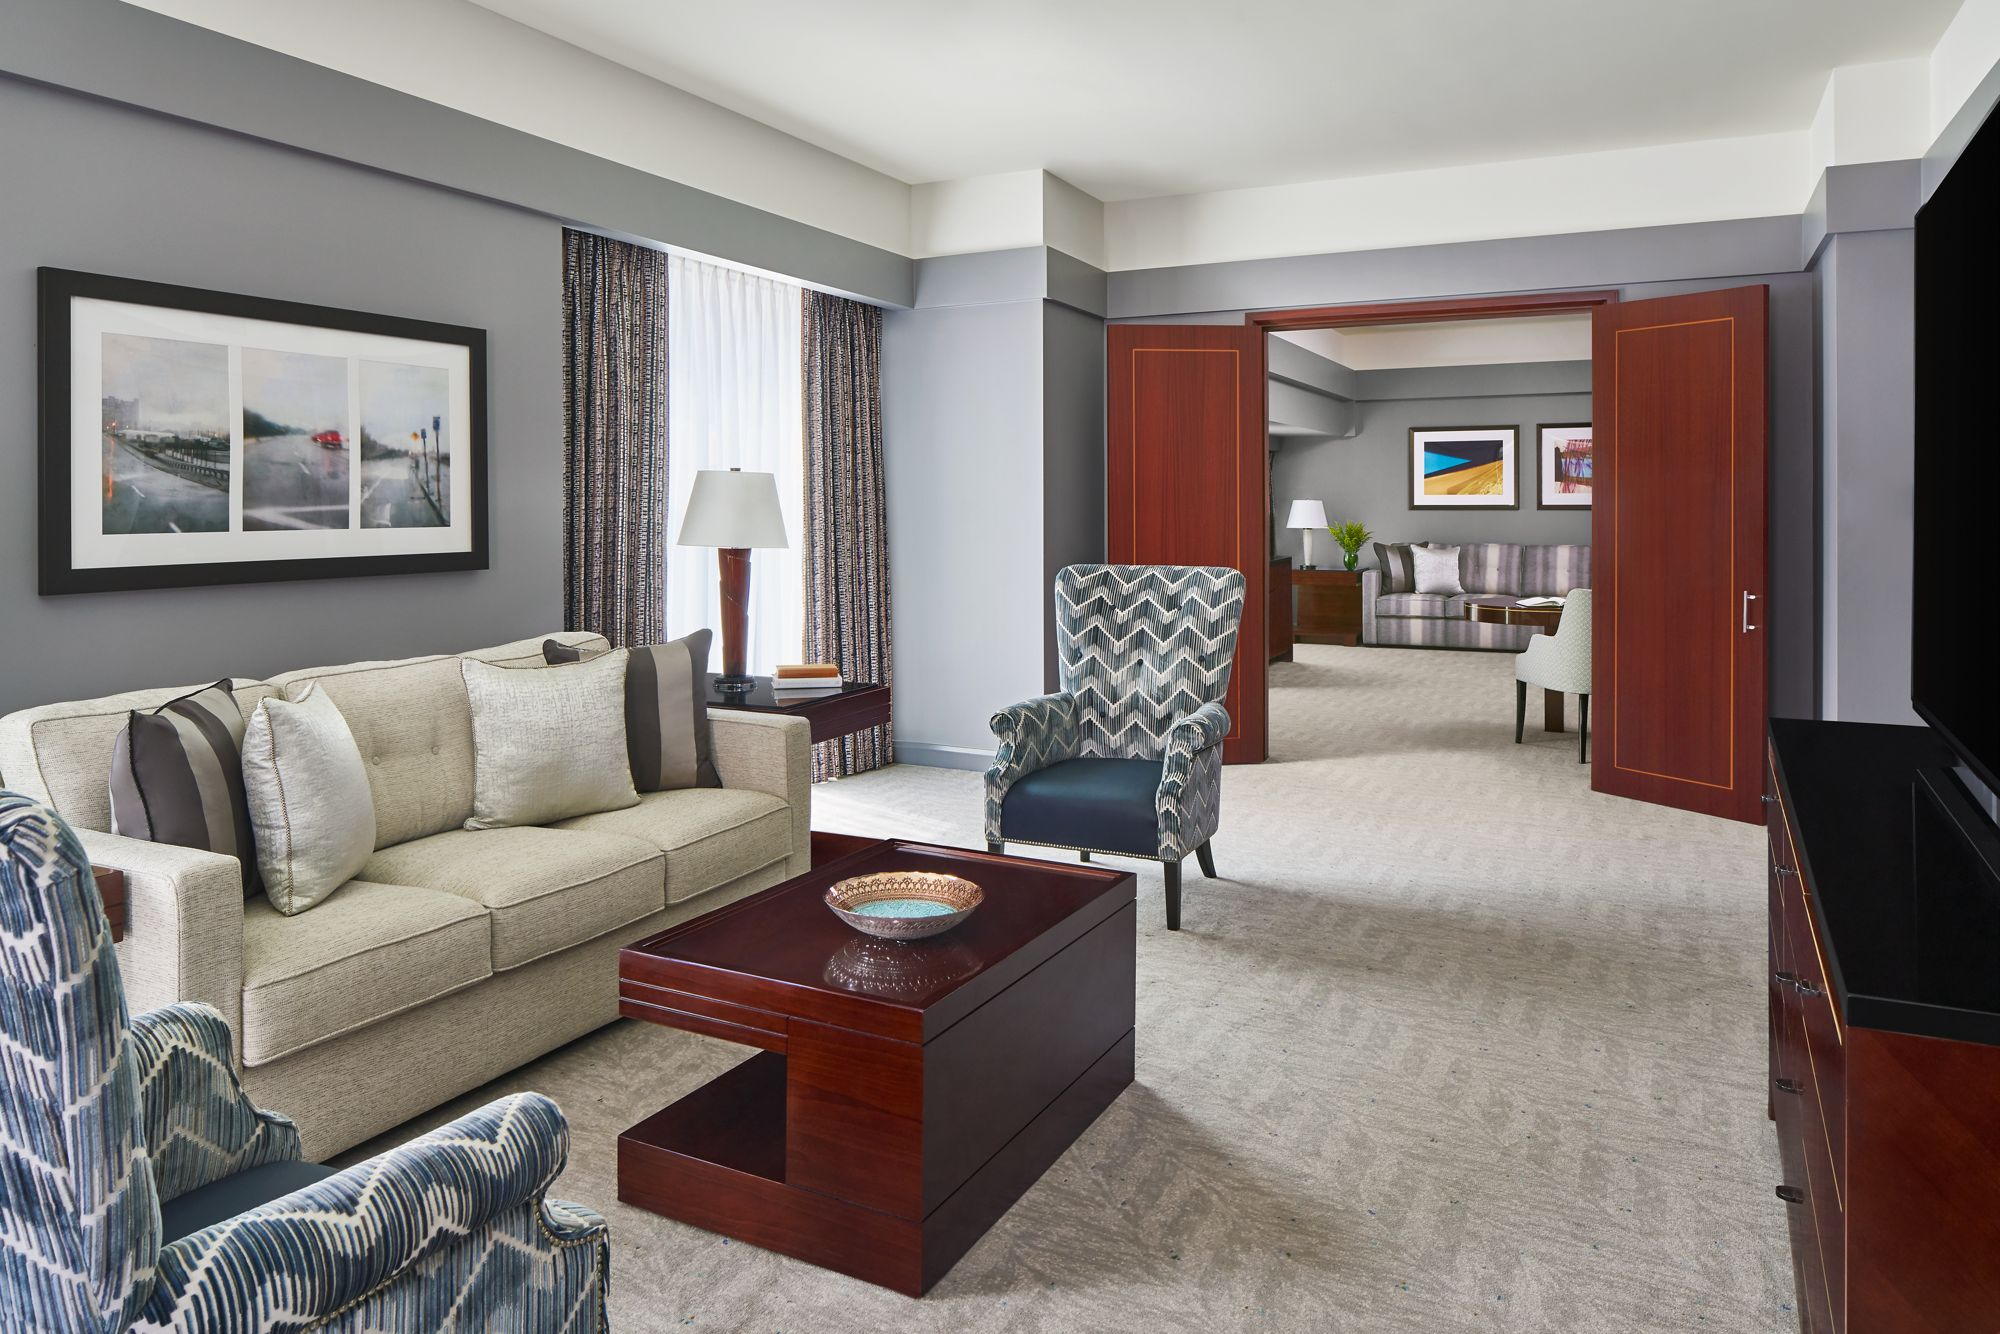 Uptown Suite in Charlotte, NC  The Ritz-Carlton, Charlotte